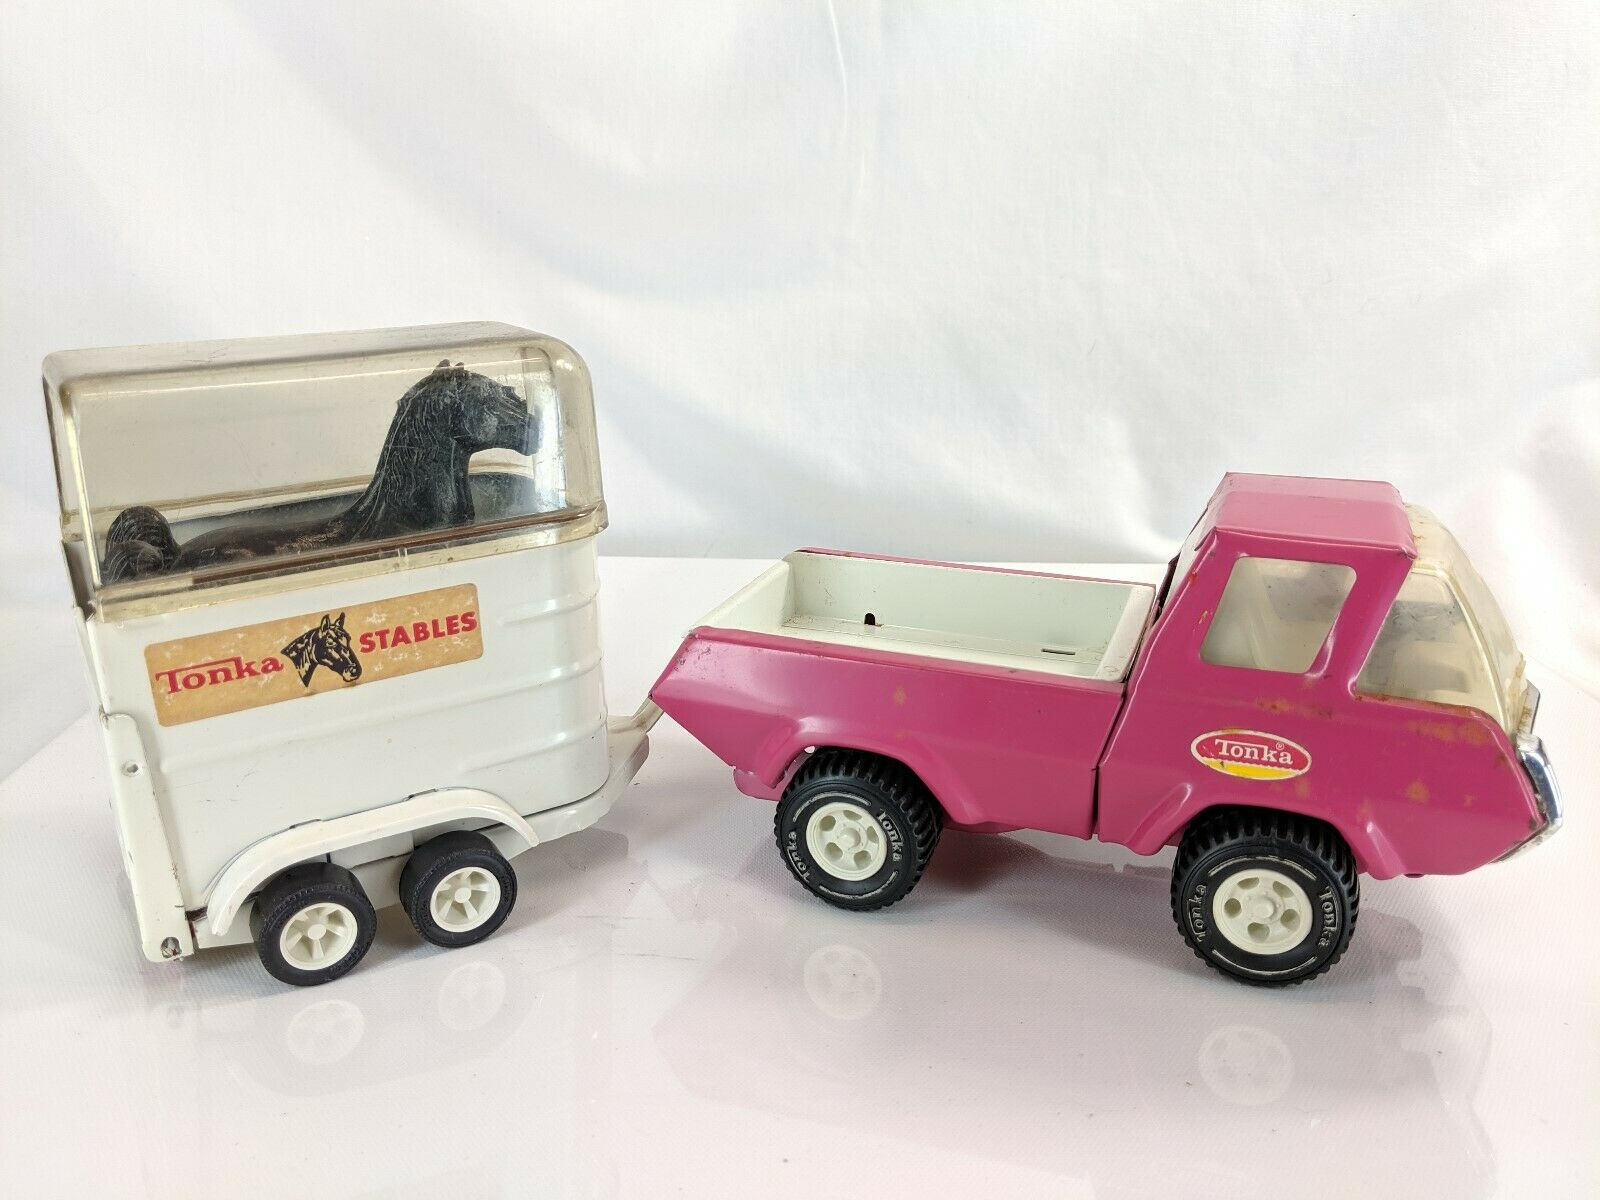 Vintage Tonka Stables Truck Pressed Steel with Horse Trailer and Horses Used